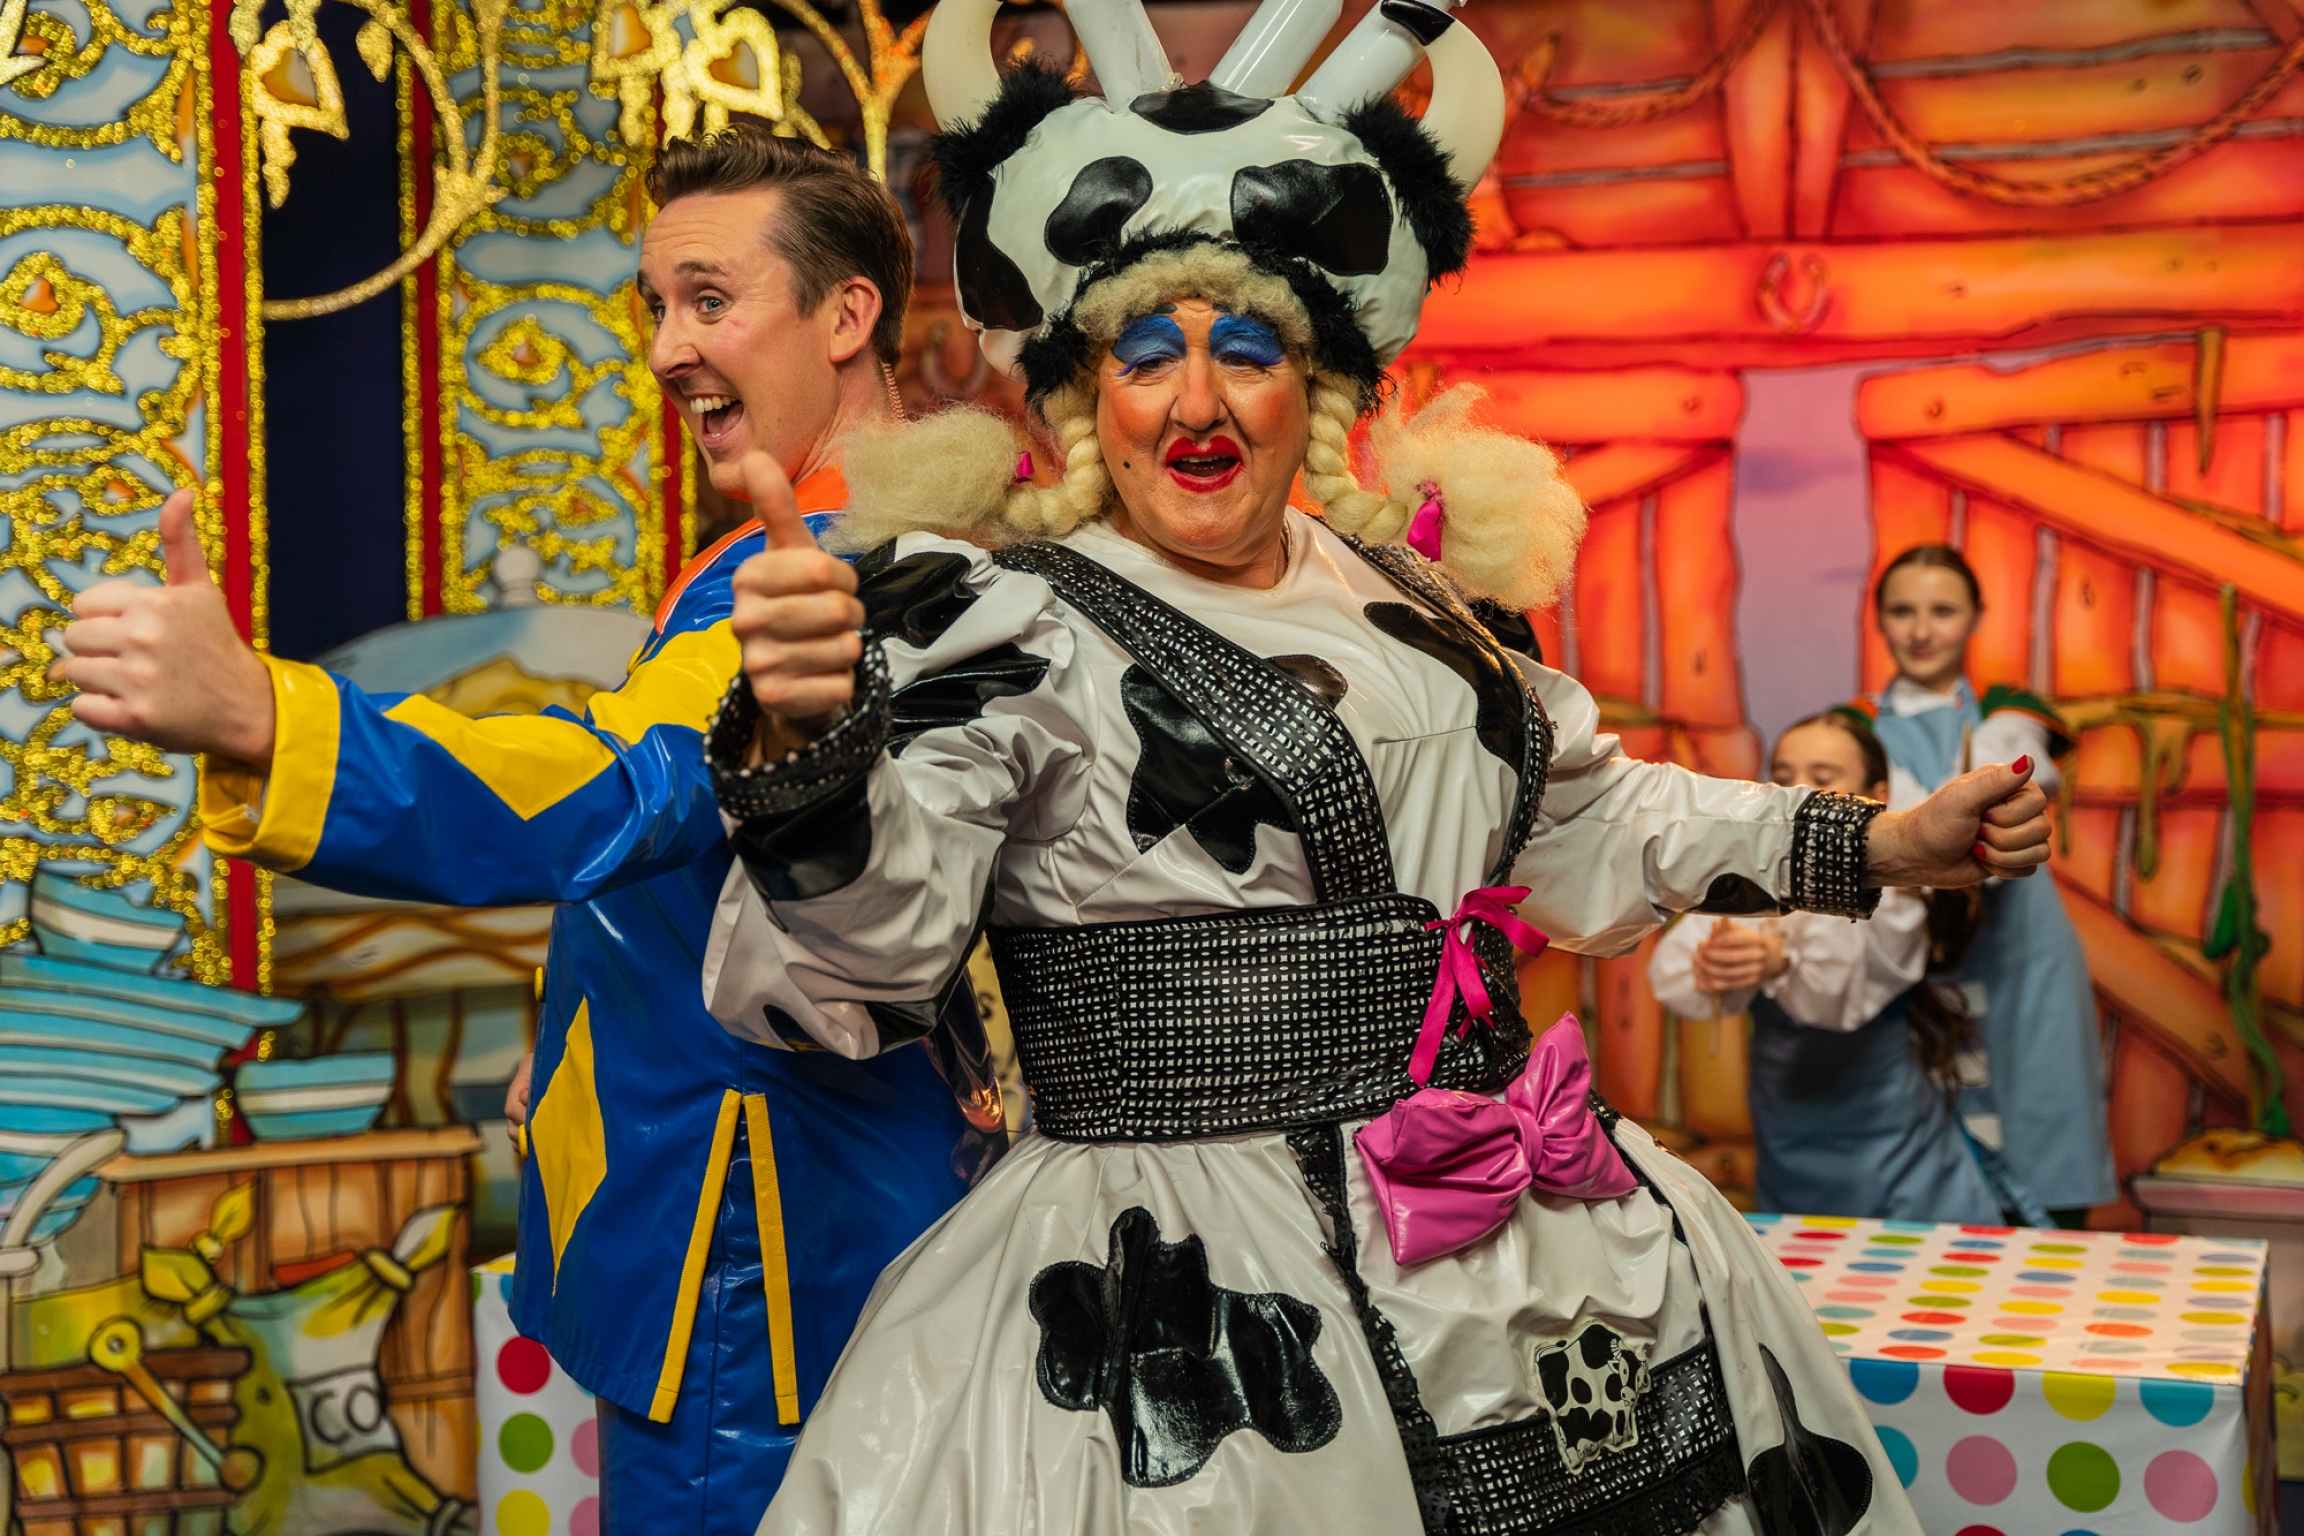 Craig Hollingsworth (Simon Trott)and Iain Lauchlan (Dame Trott) usually perform in the UK's Belgrade Theatre's Christmas pantomime.